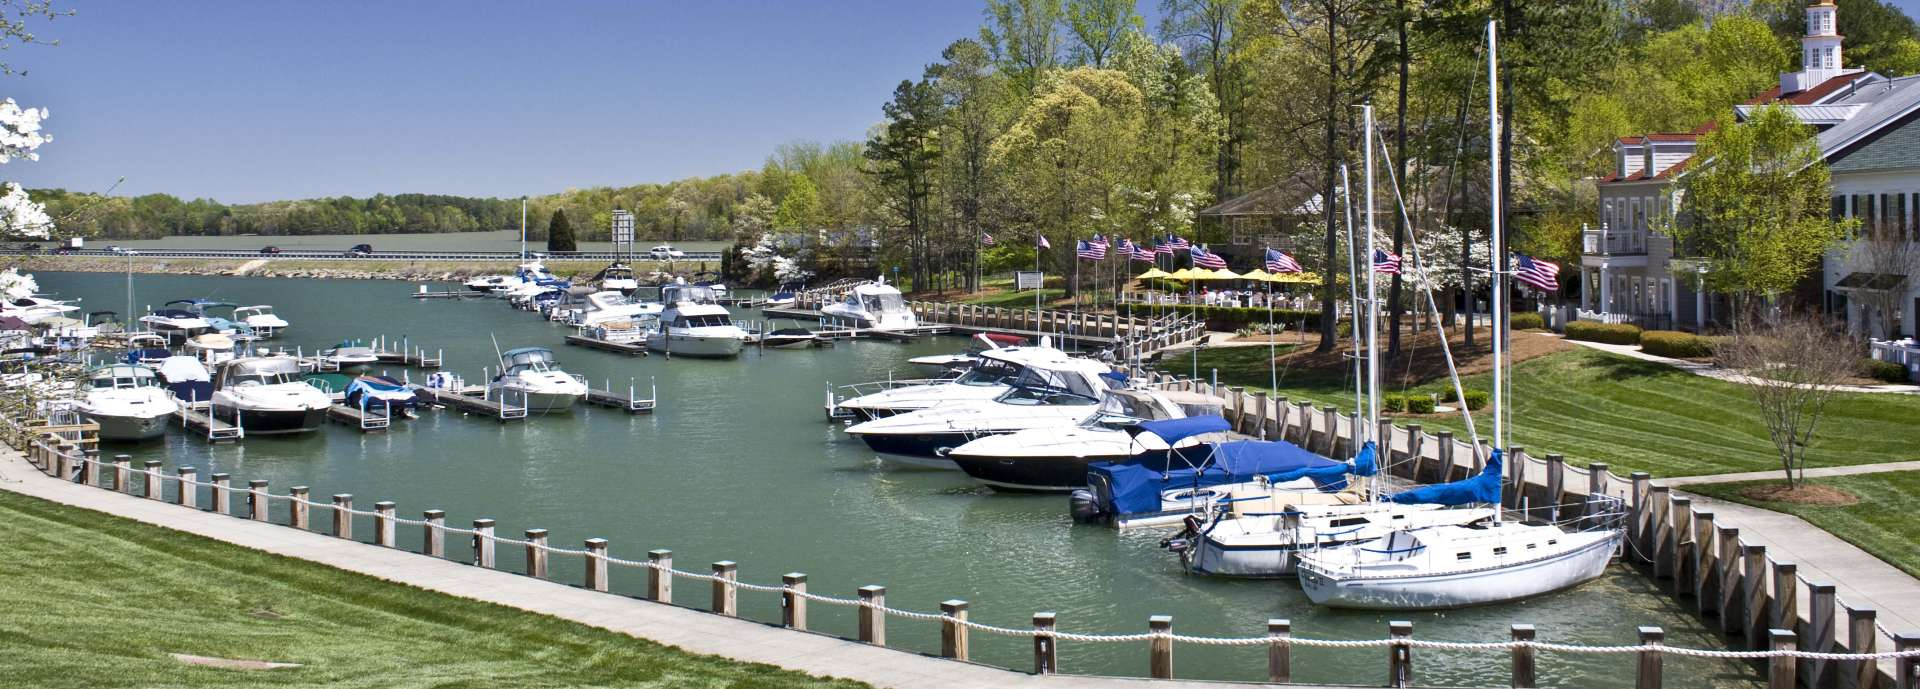 Golf carts for sale on lake norman